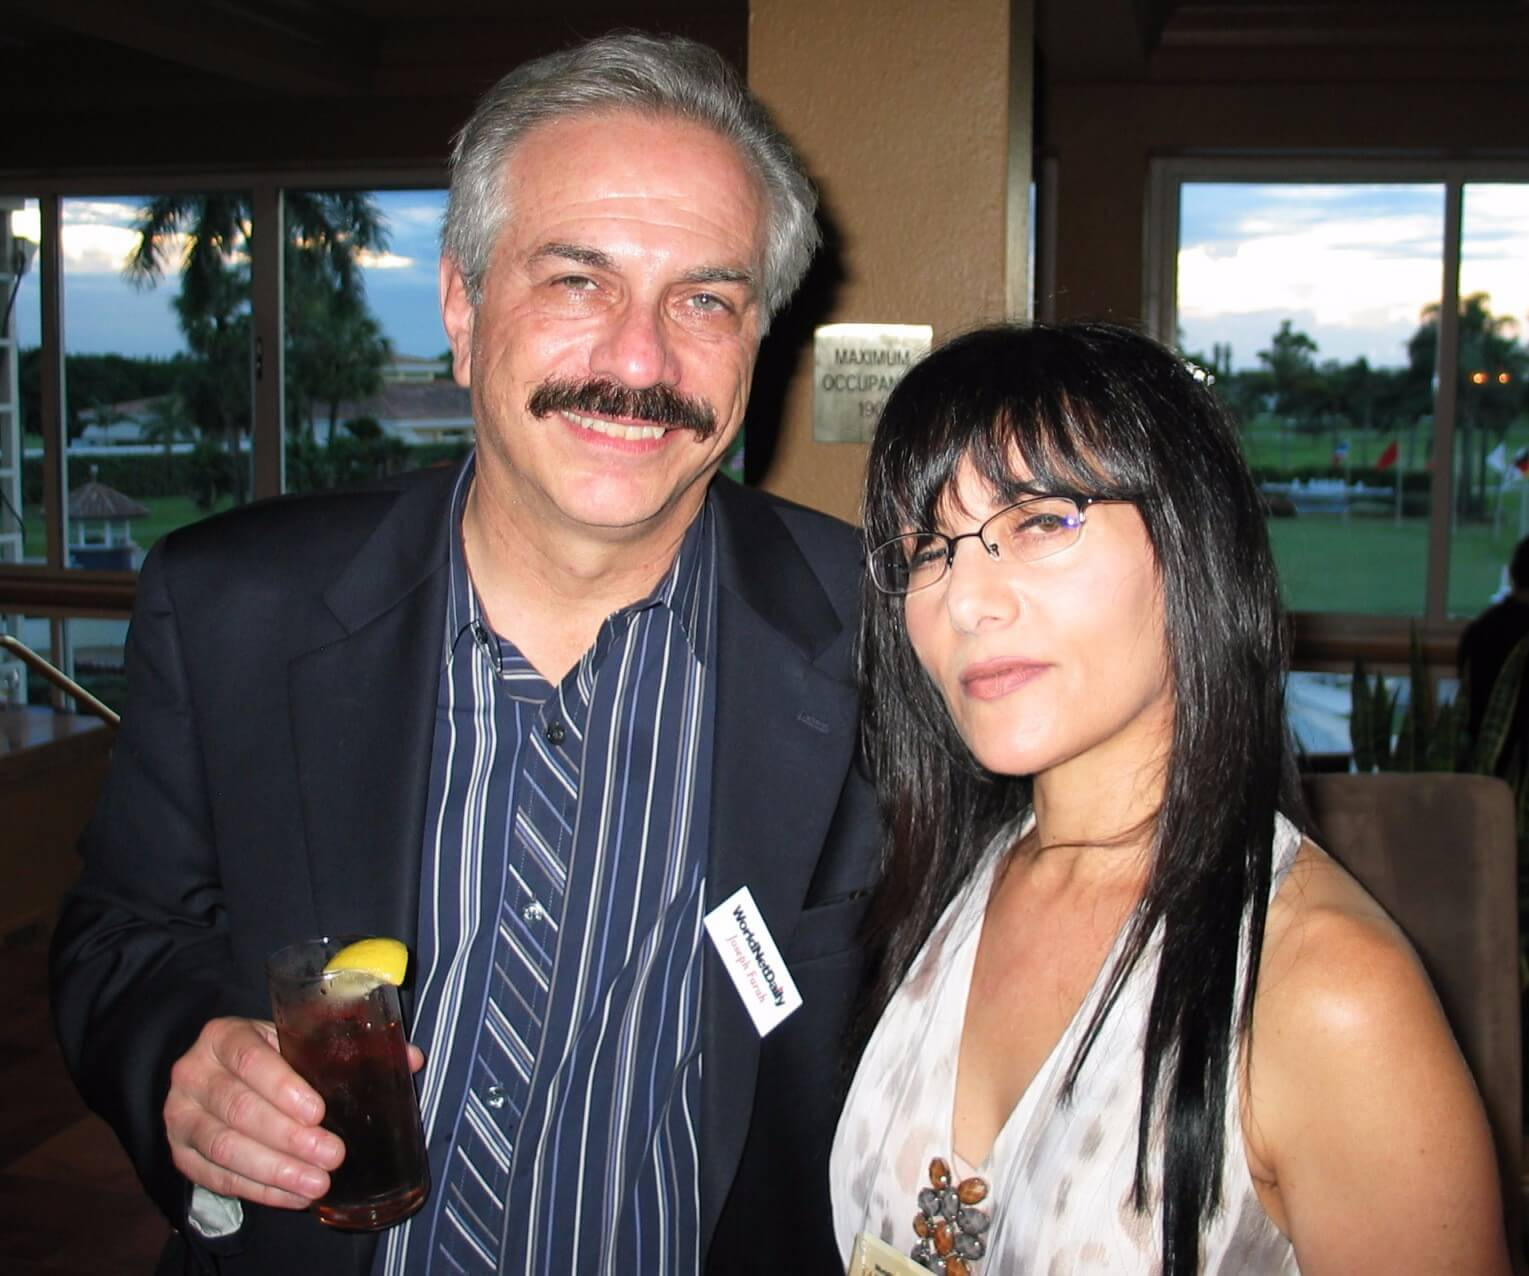 27Ilana with Joseph Farah, WorldNetDaily cocktail party, Sept 2010, Miami